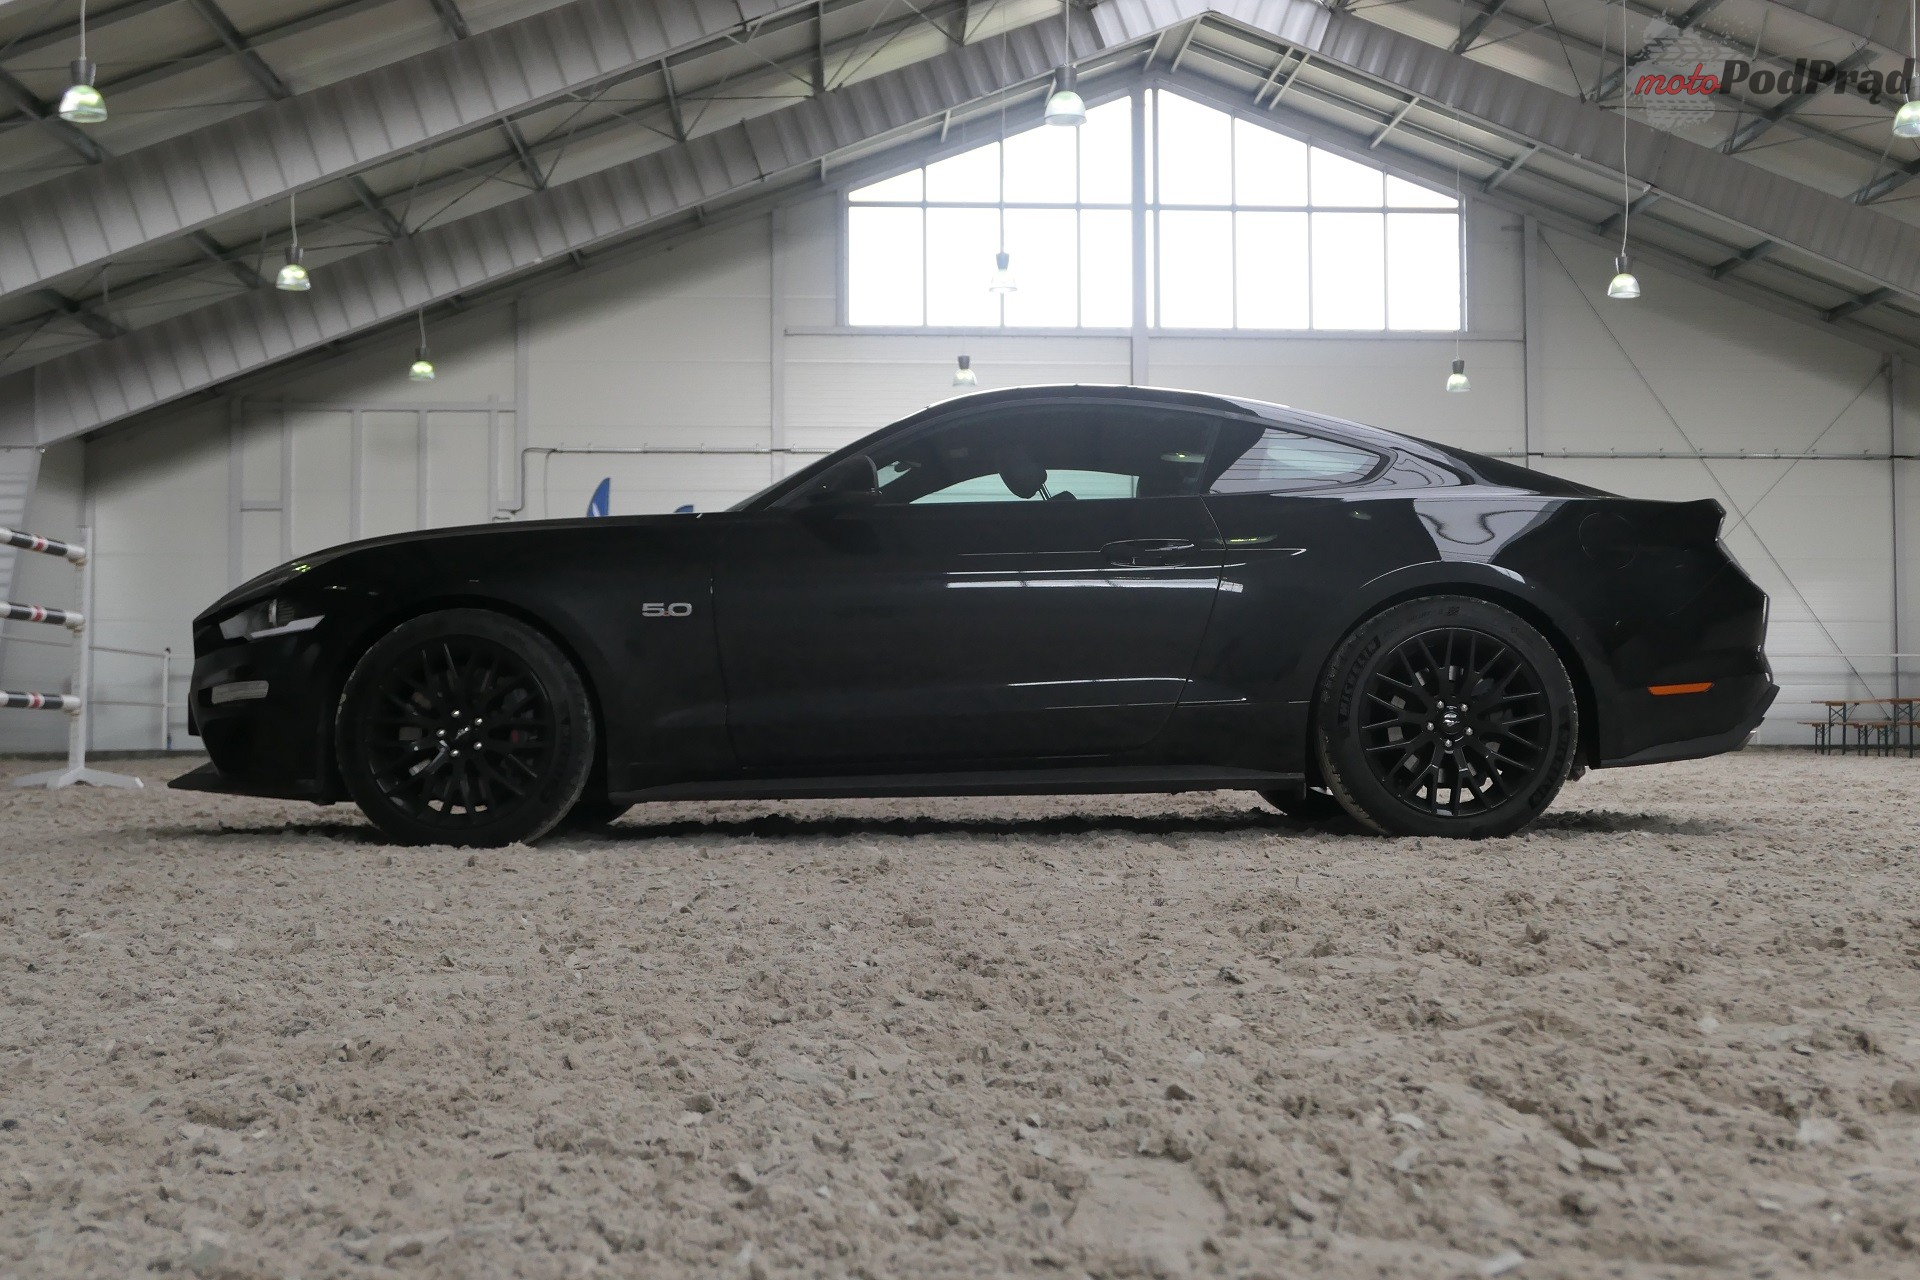 Ford Mustang 2018 28 Ford Mustang na Route 66